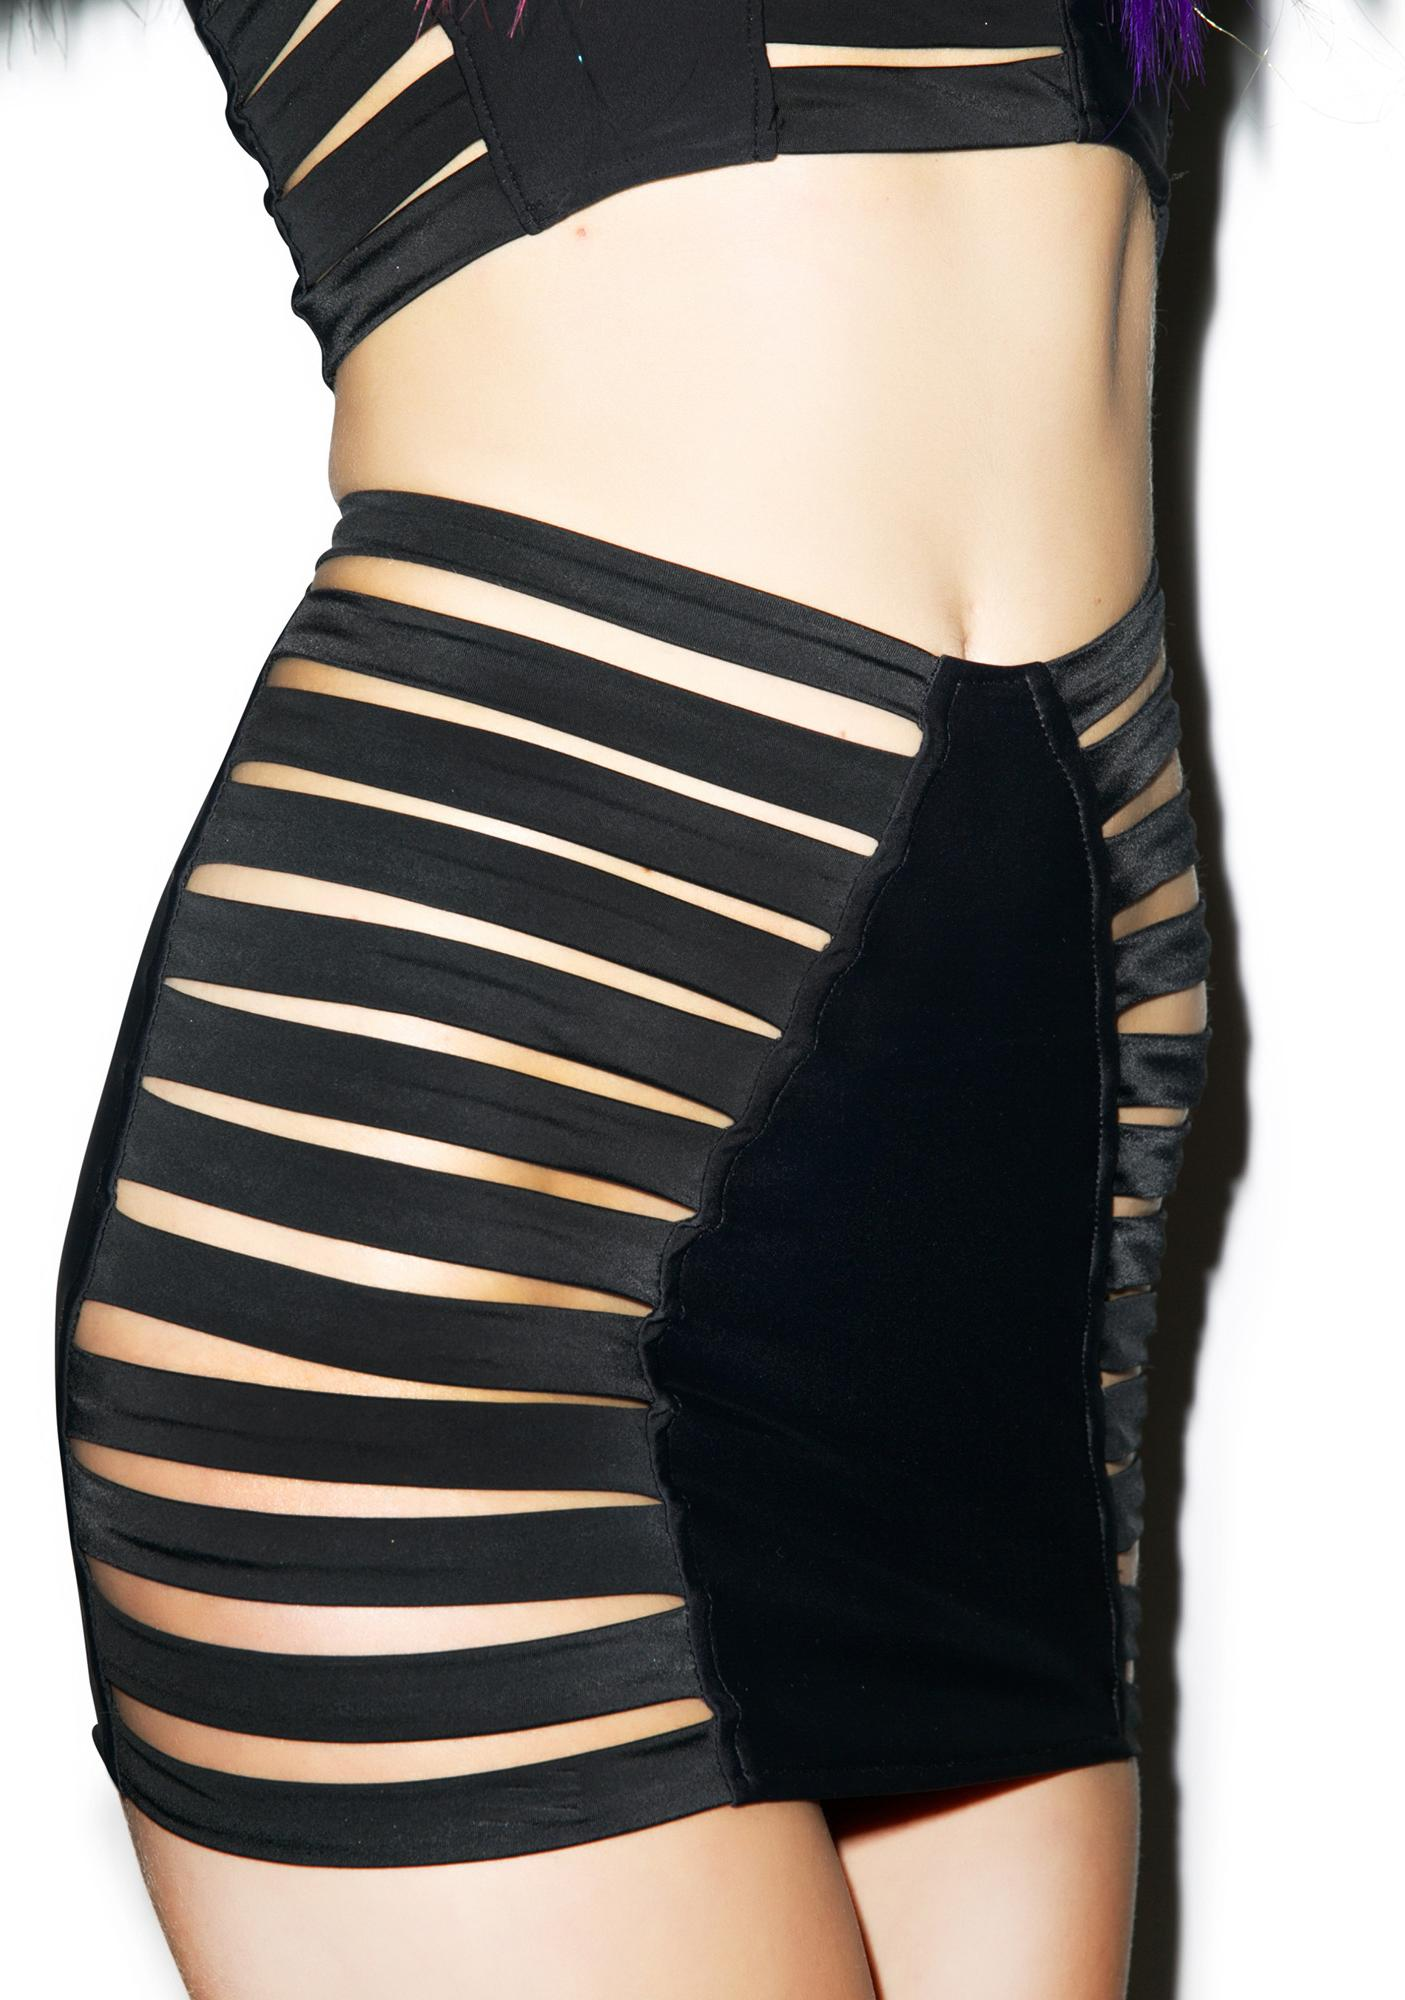 J Valentine Black Widow Strappy Skirt